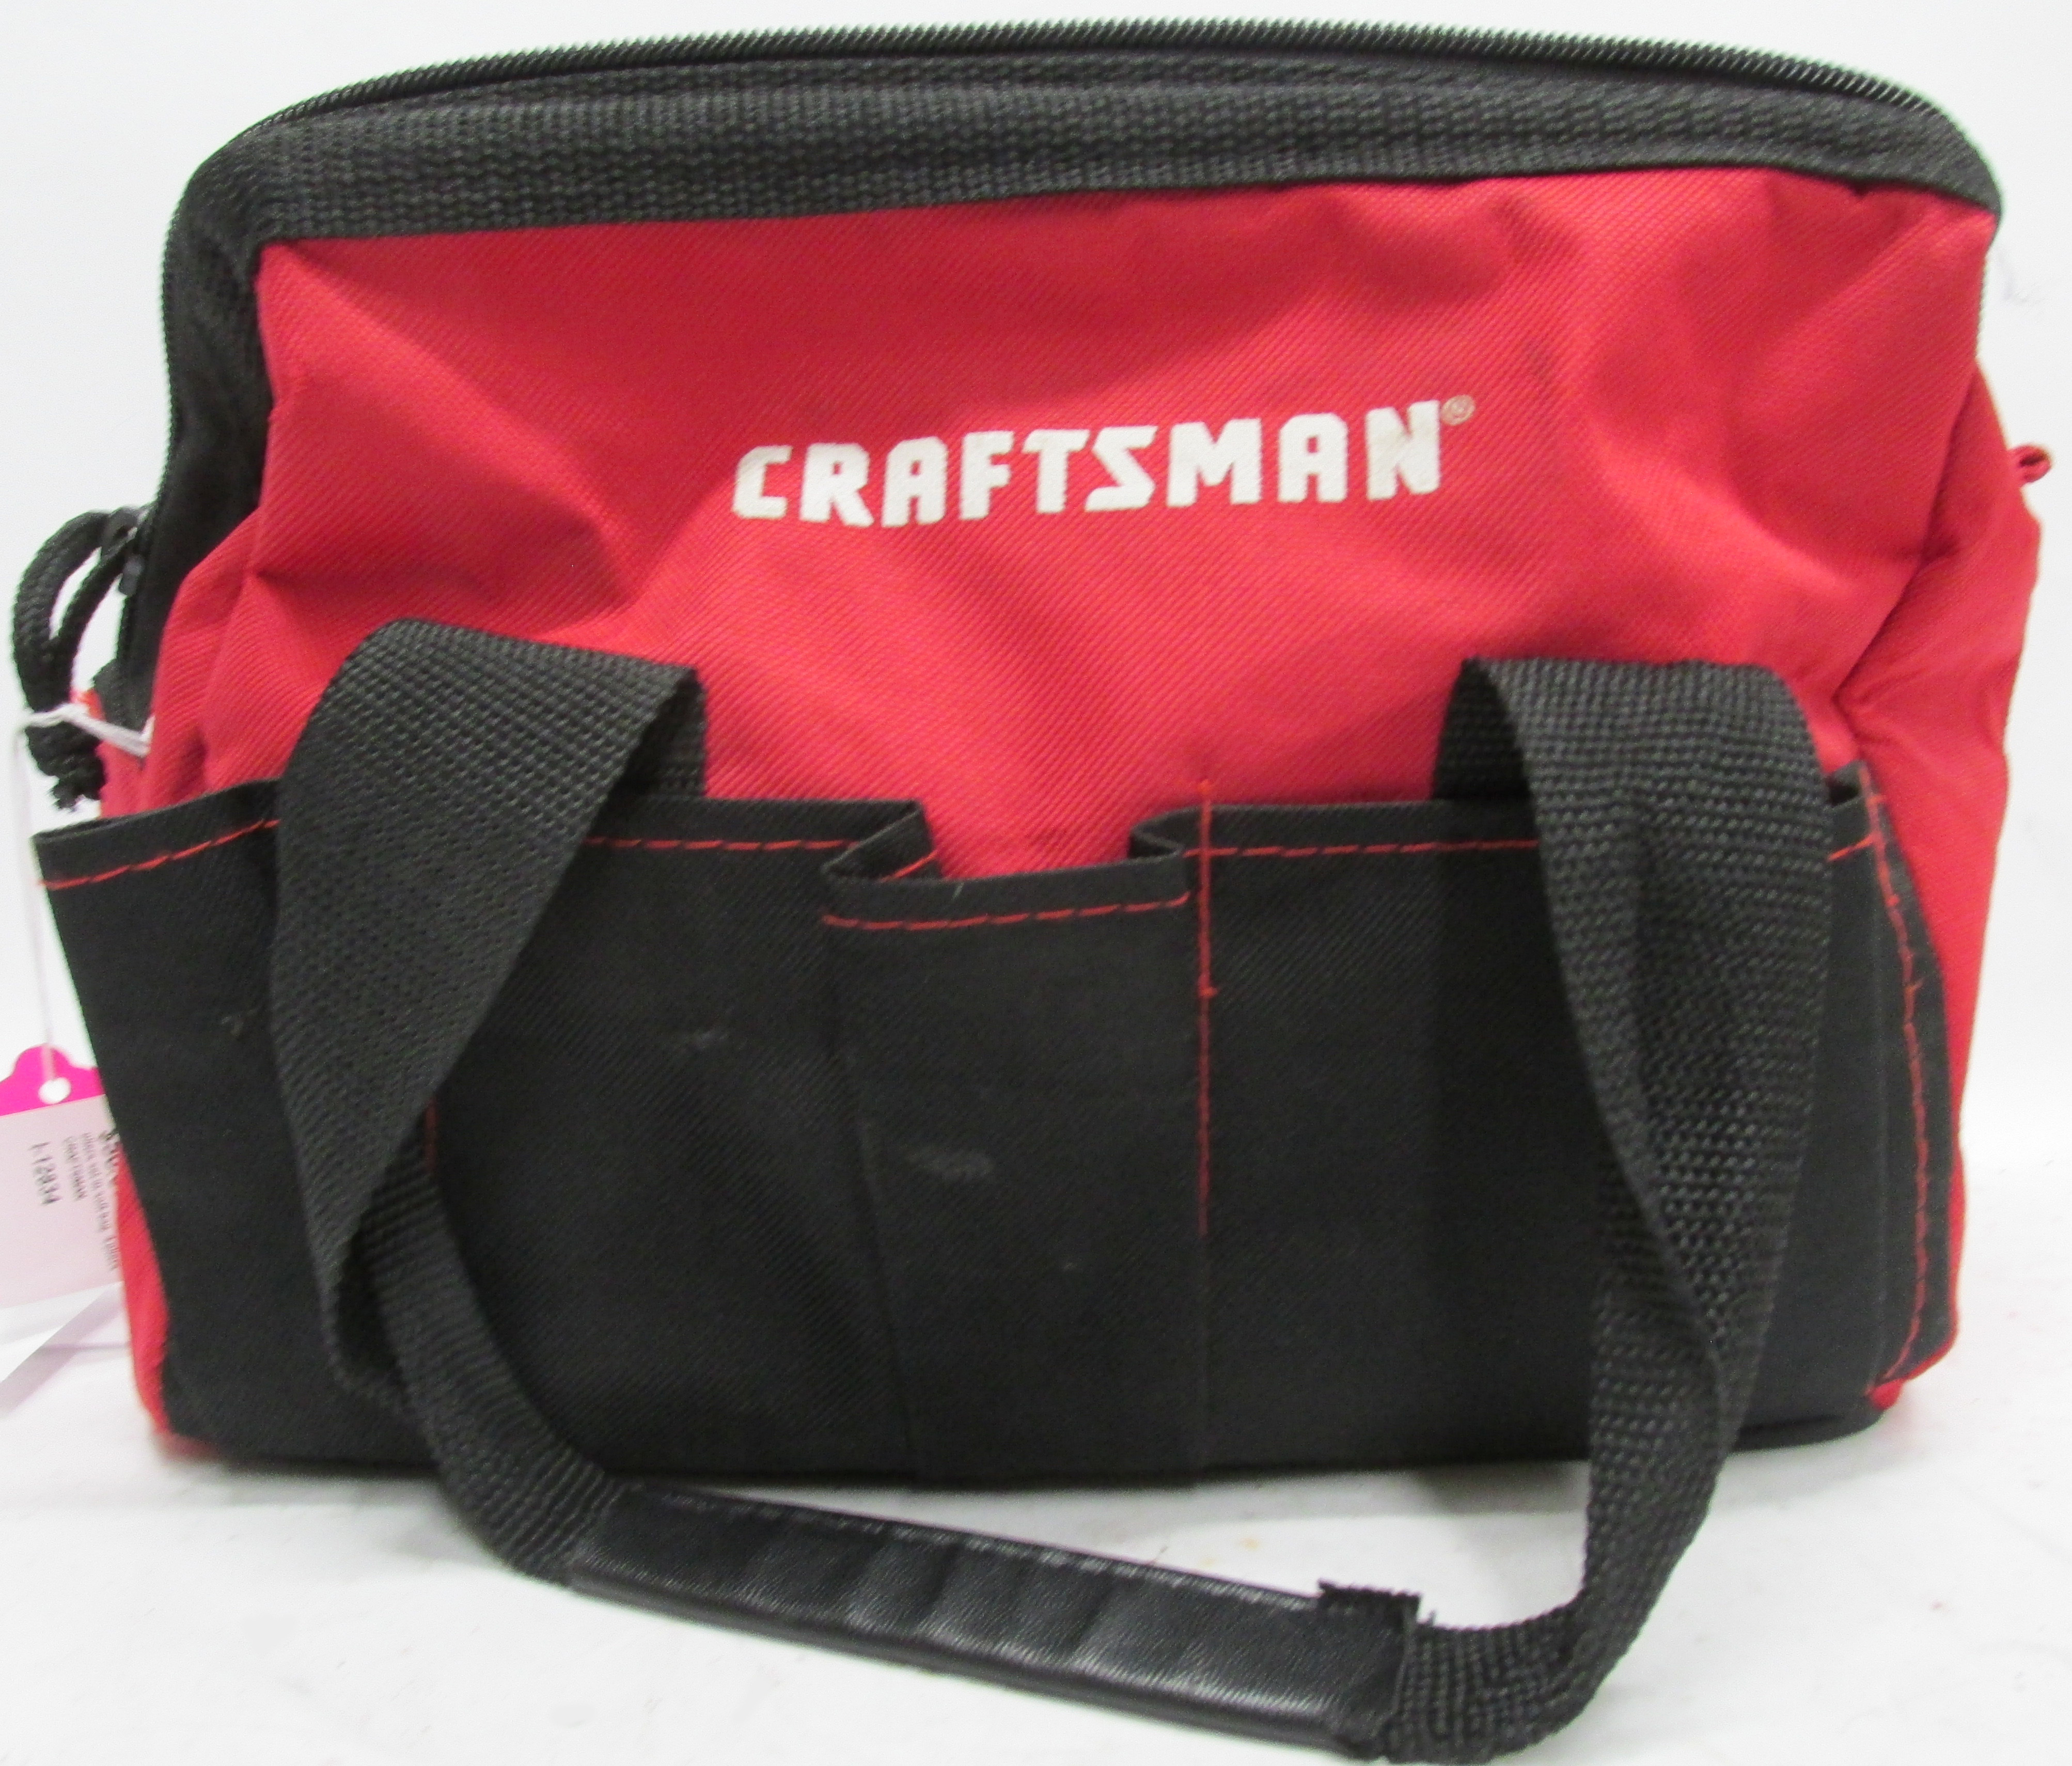 Craftsman 4-Piece Pliers Set with TruGrip Handles in Soft Bag